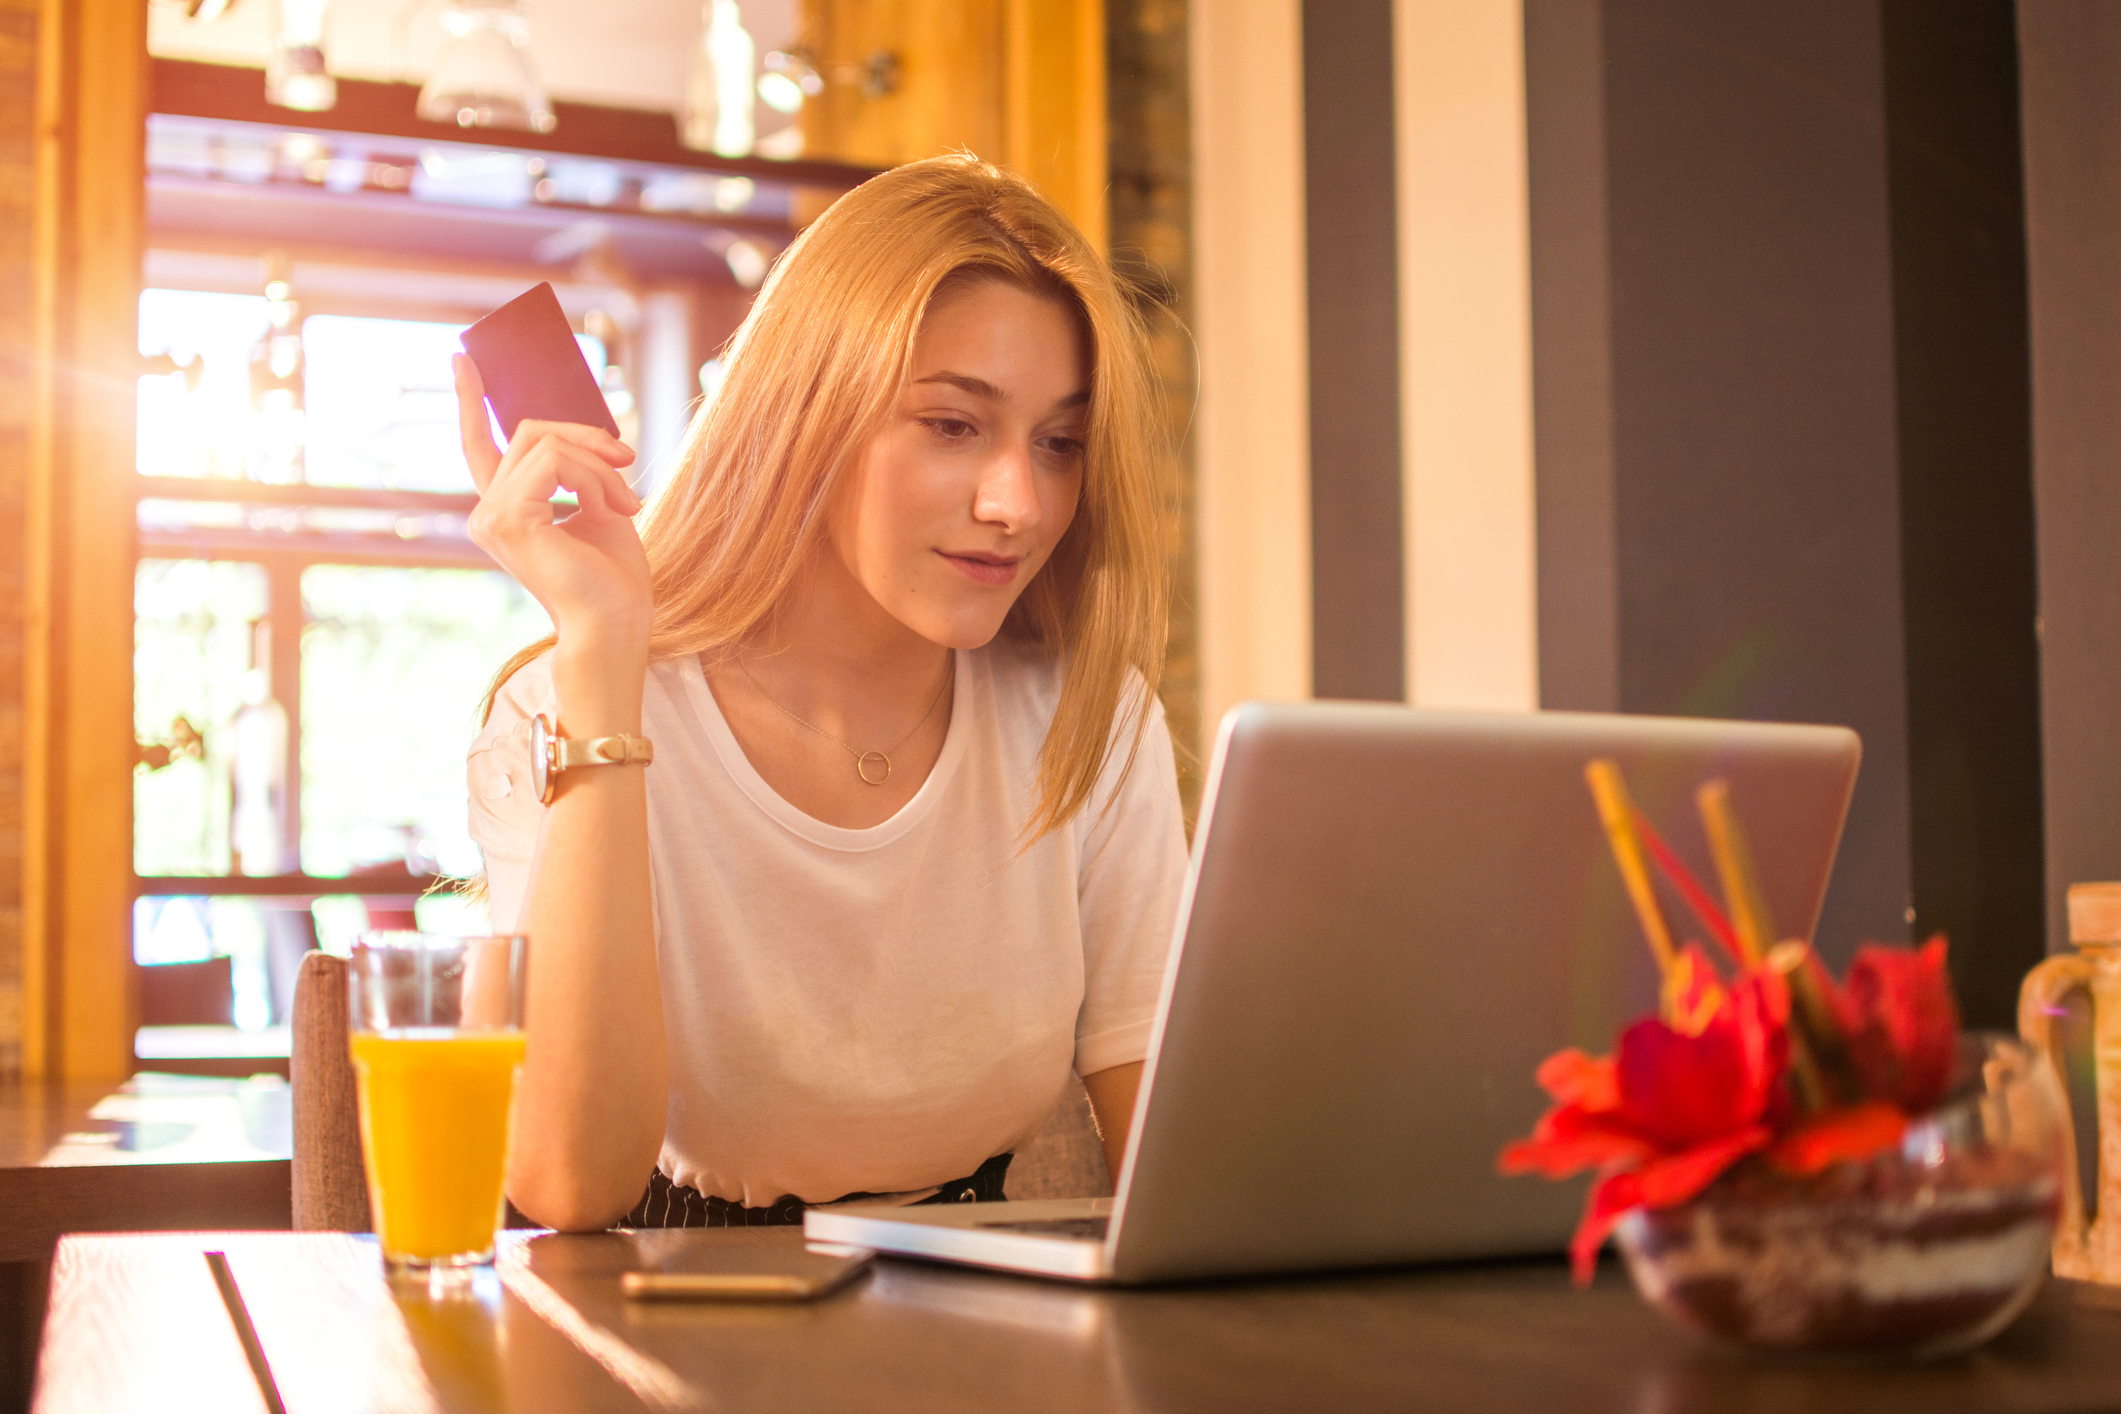 Young adult woman at laptop holding credit card.